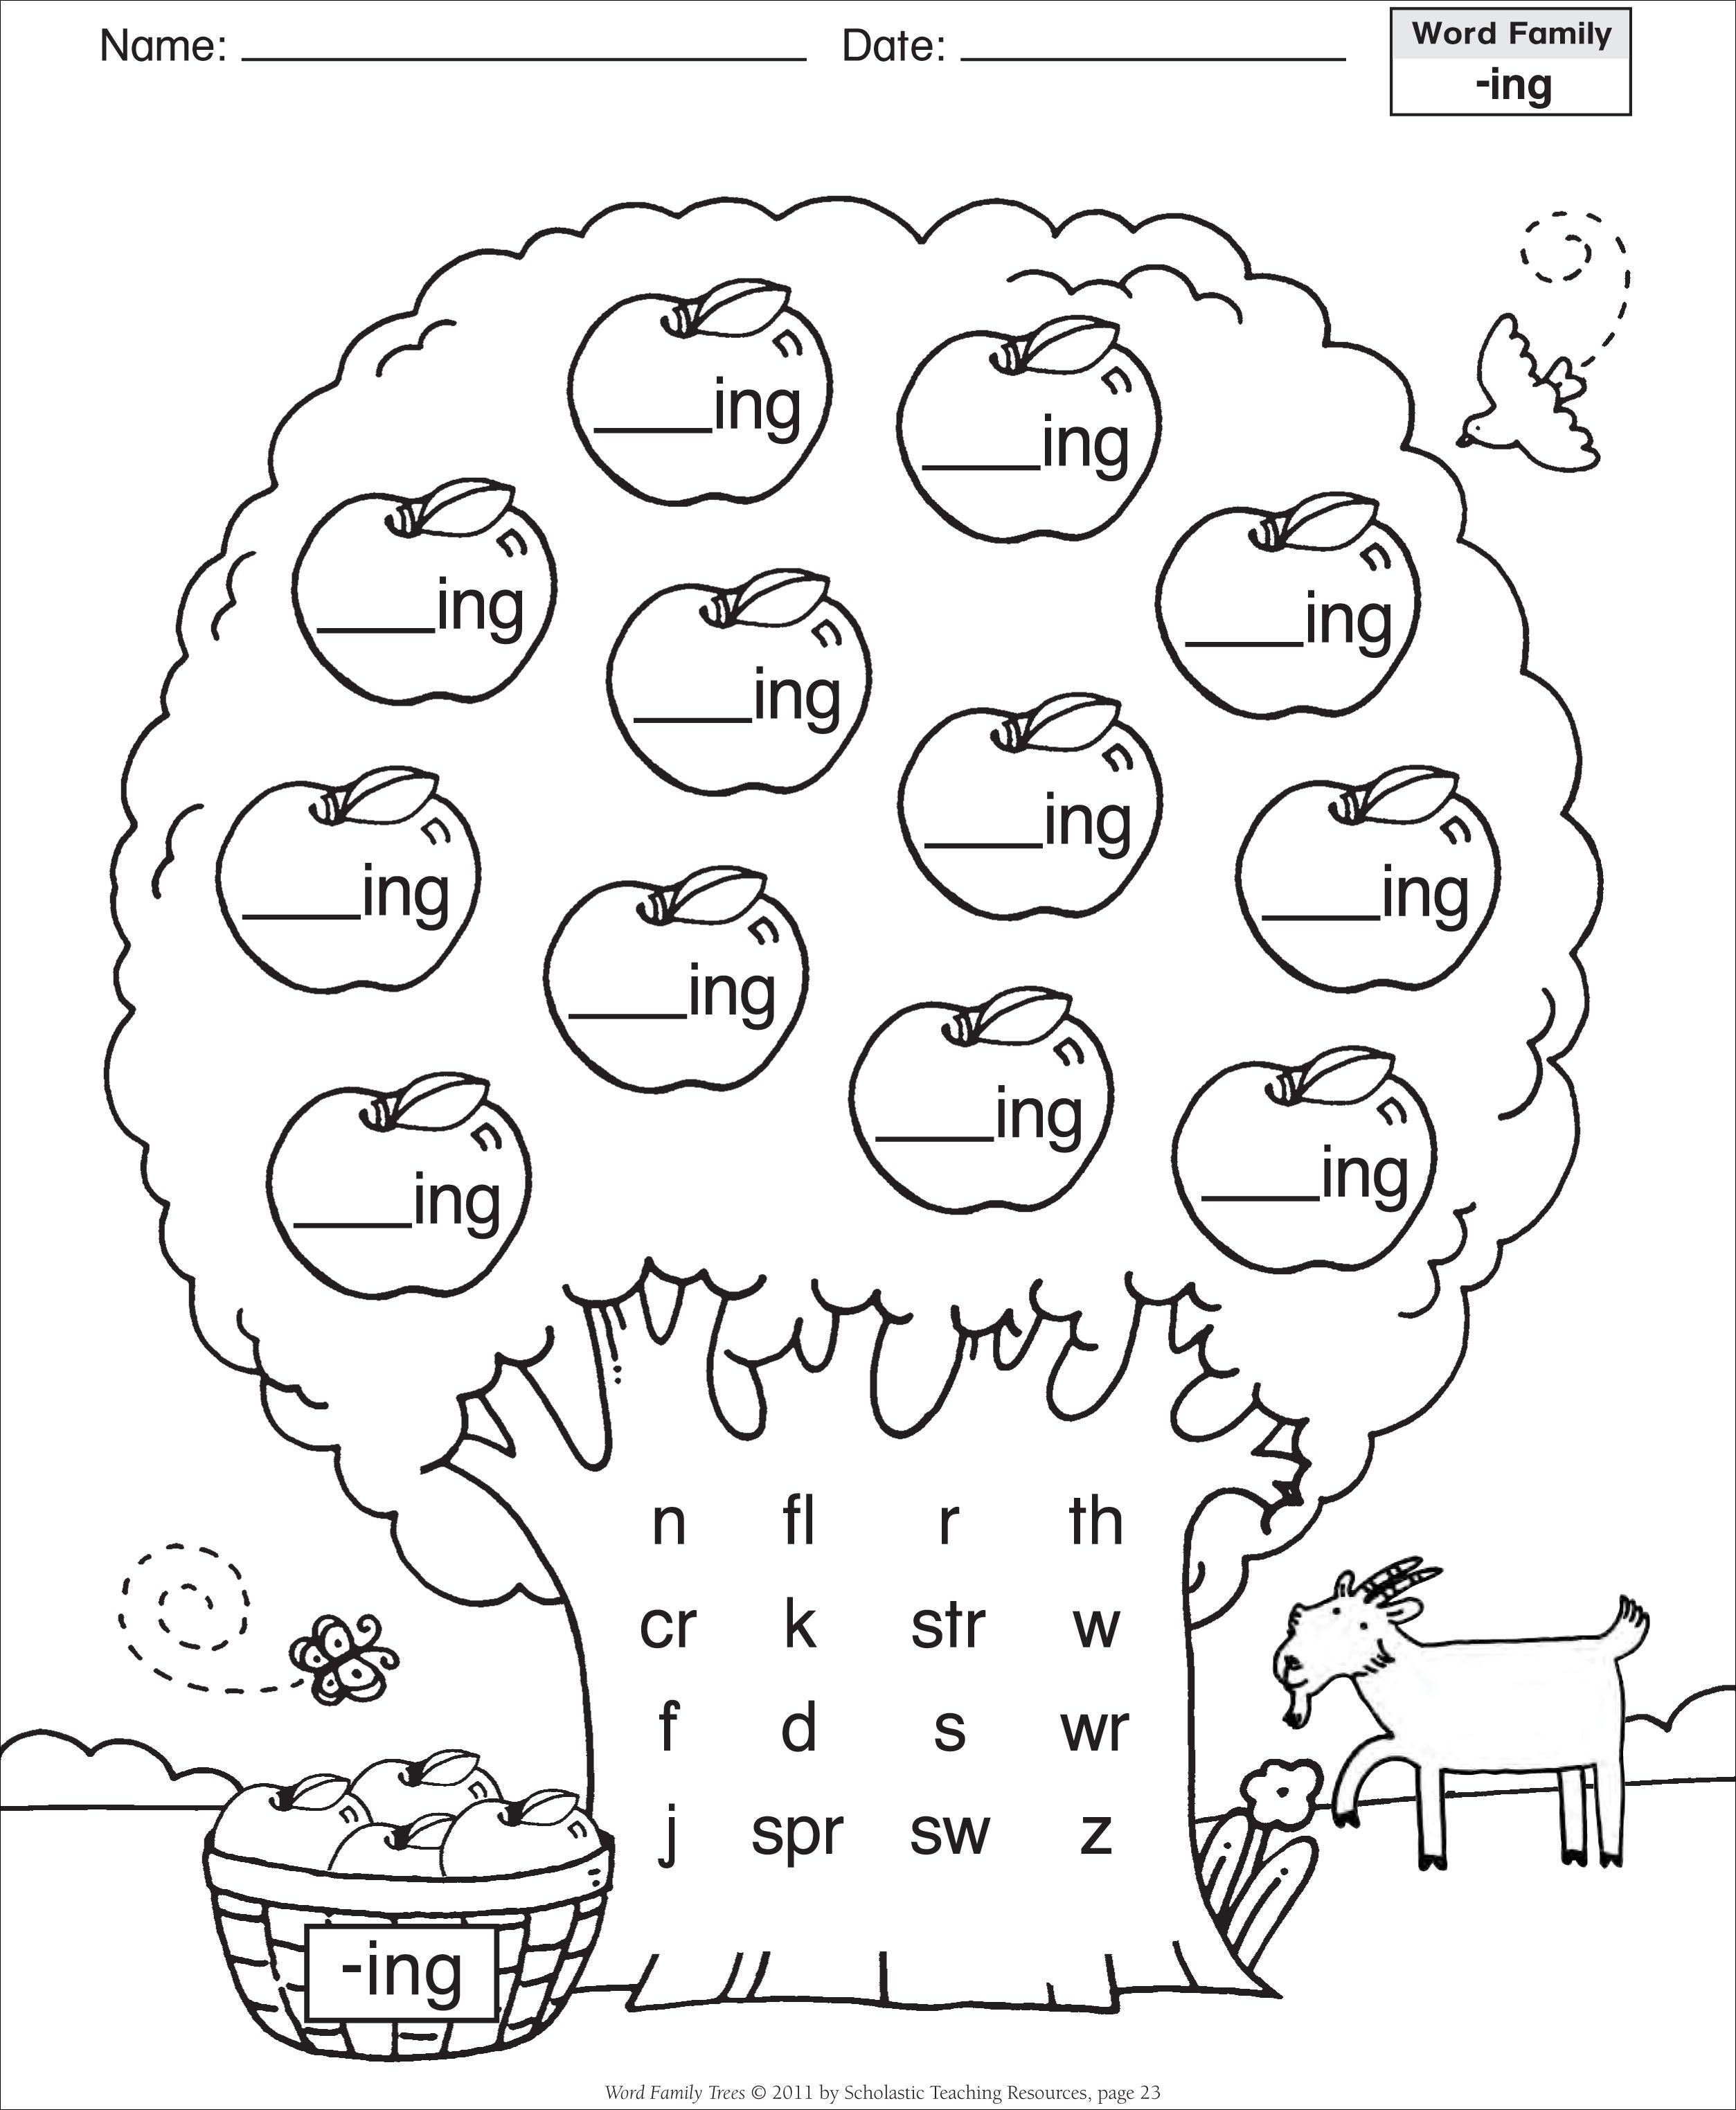 - Word+Family+Worksheets Word Family Worksheets, Word Families